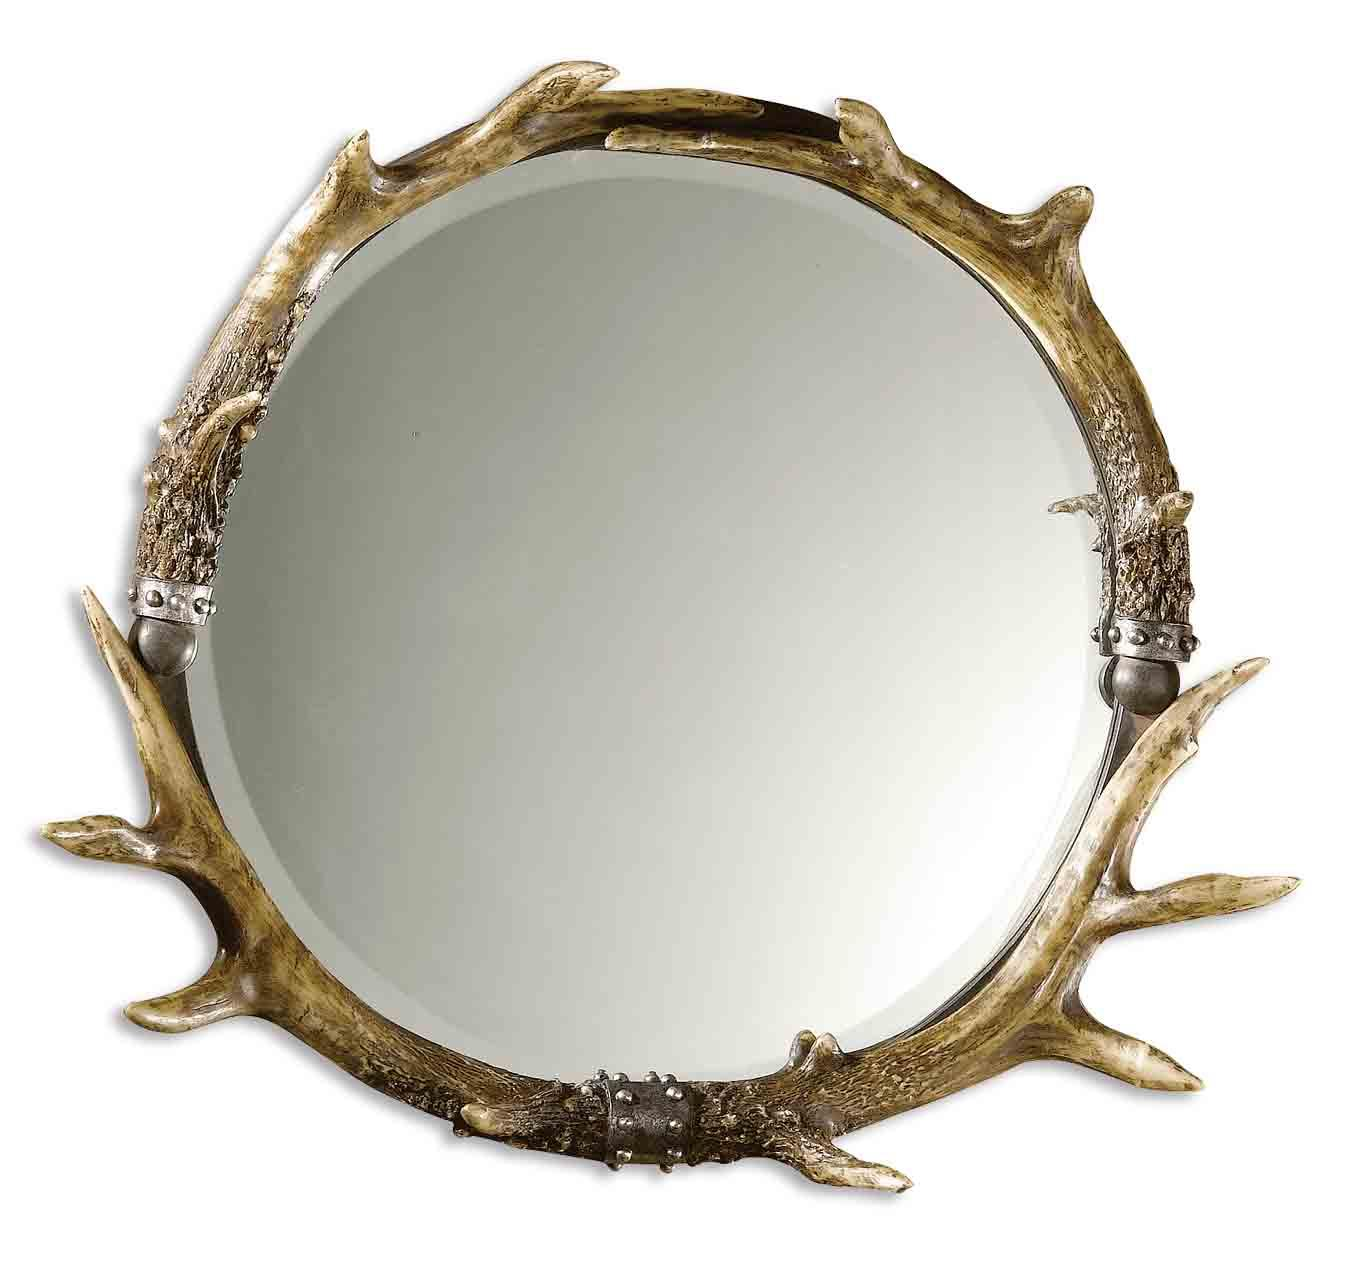 Uttermost Mirrors Stag Horn Mirror Round - Item Number: 11556 B